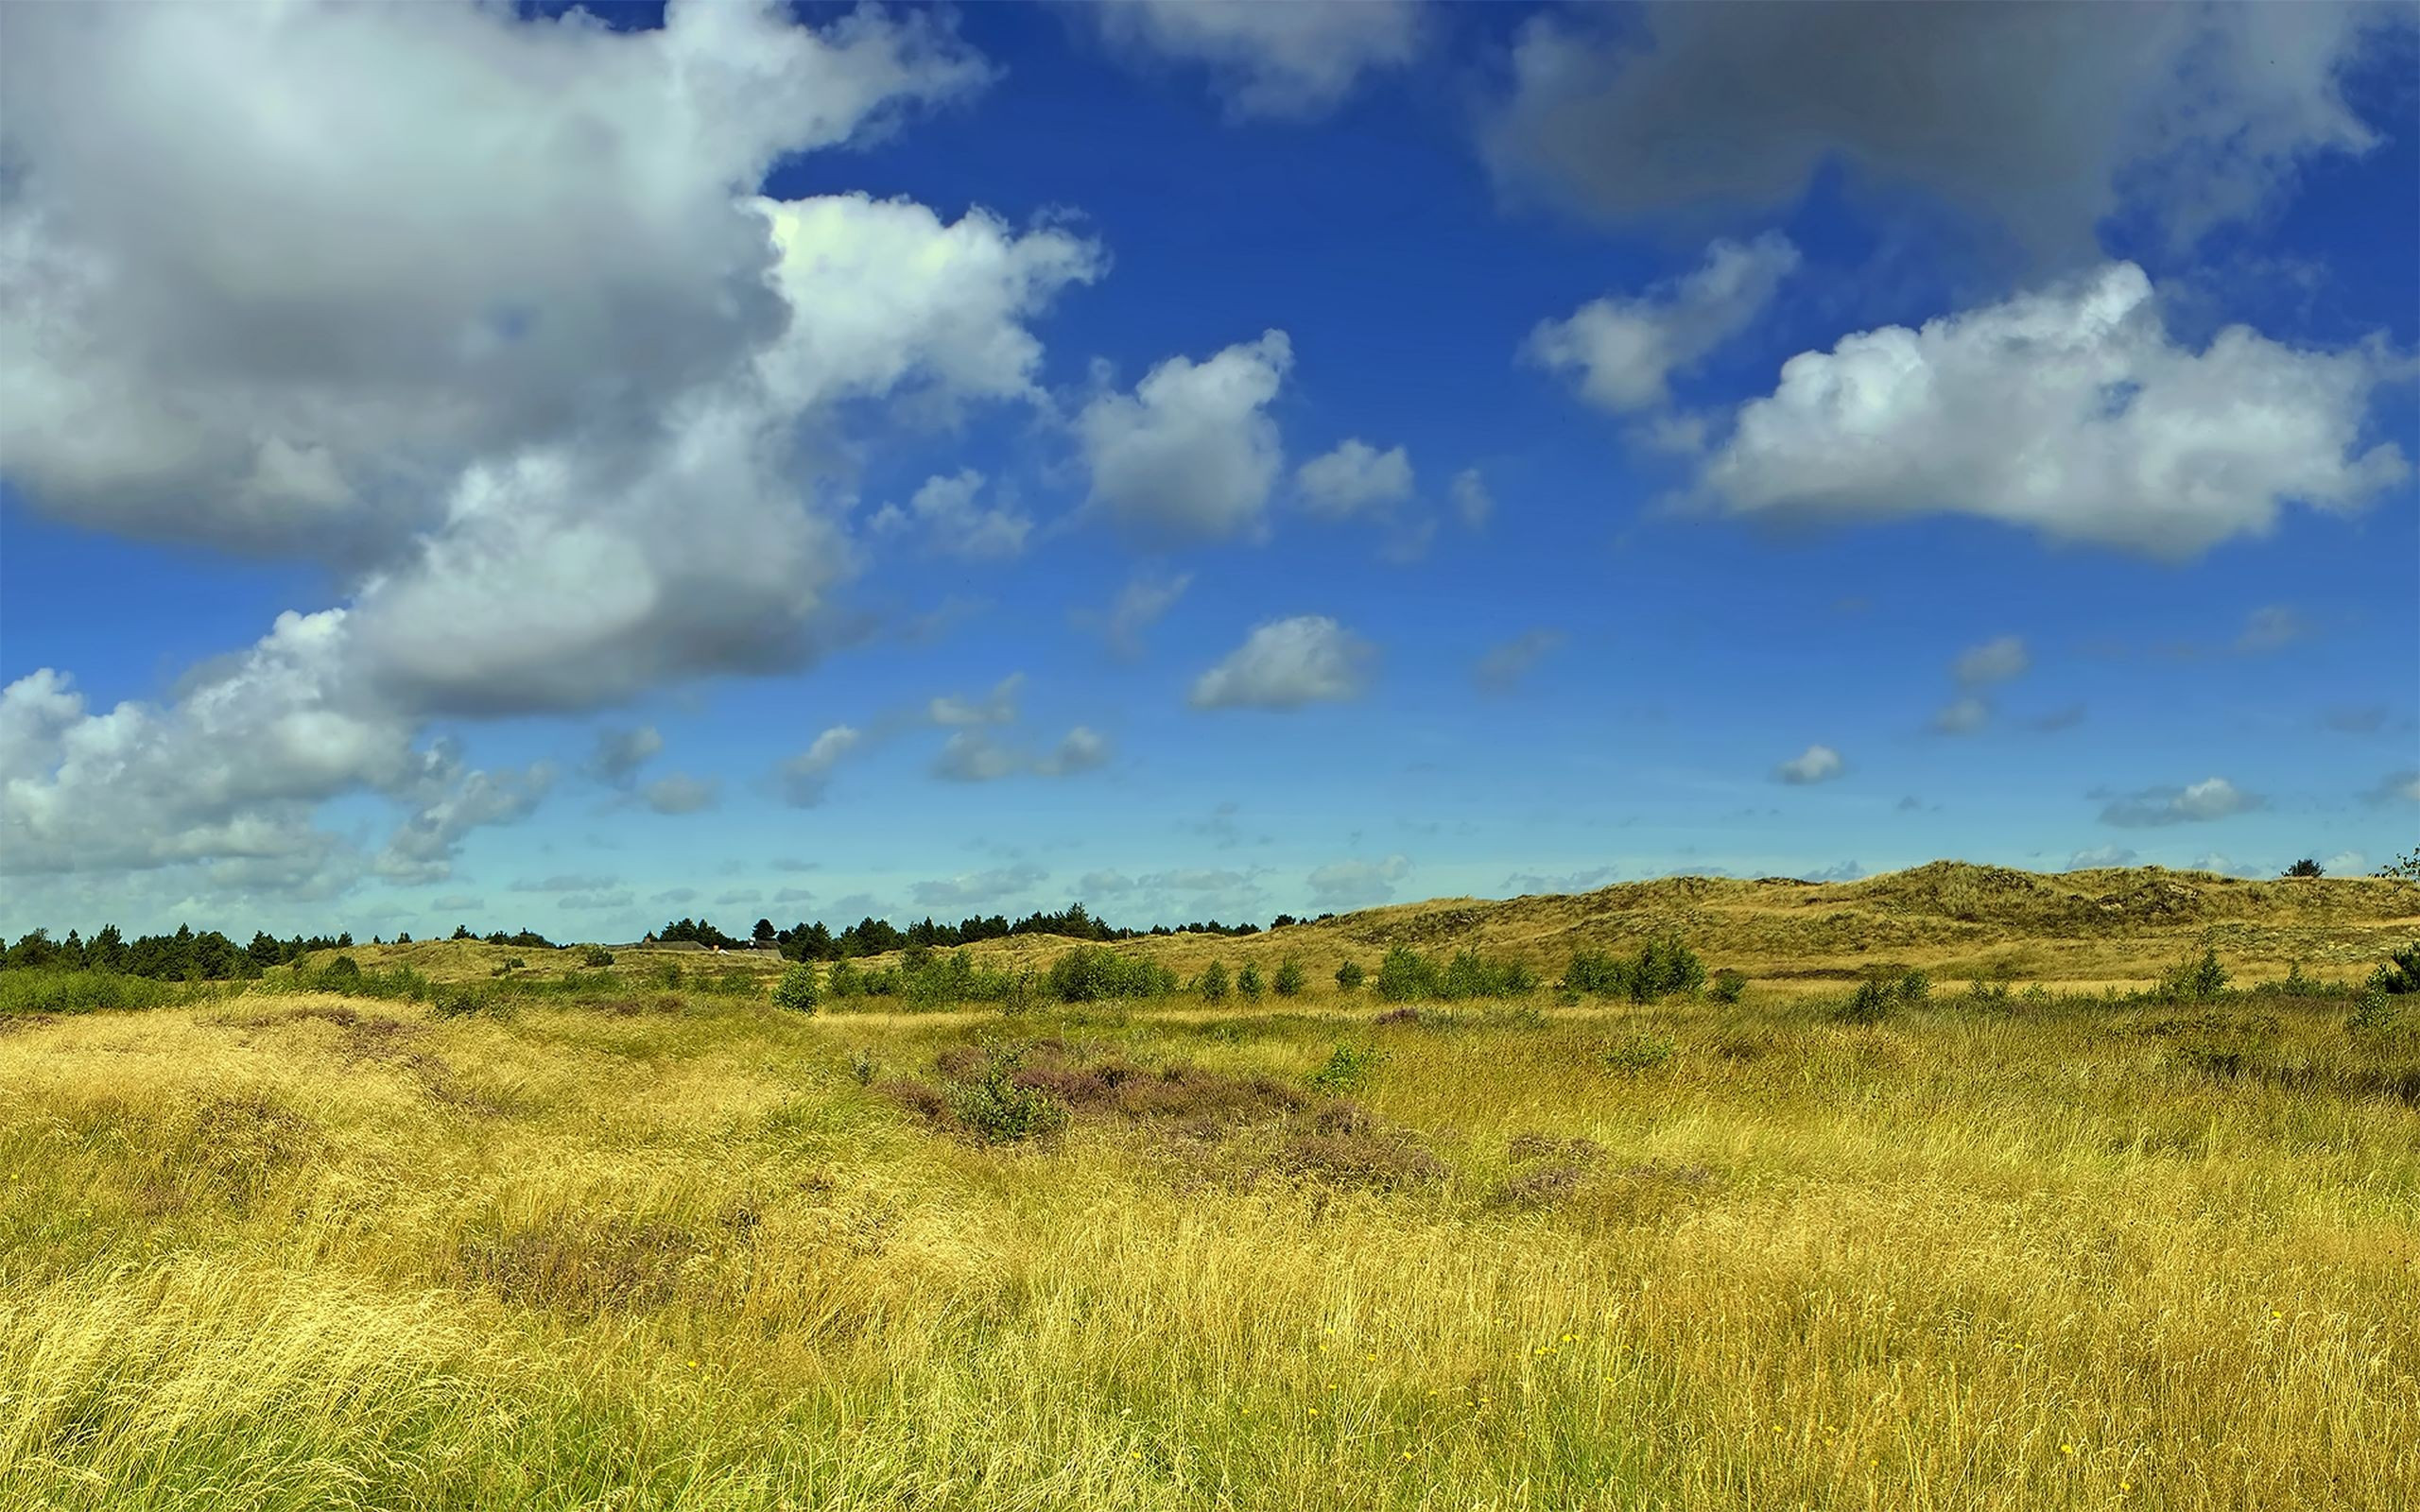 4k Relaxing field and fluffy clouds Wallpaper for desktop and mobile phones.